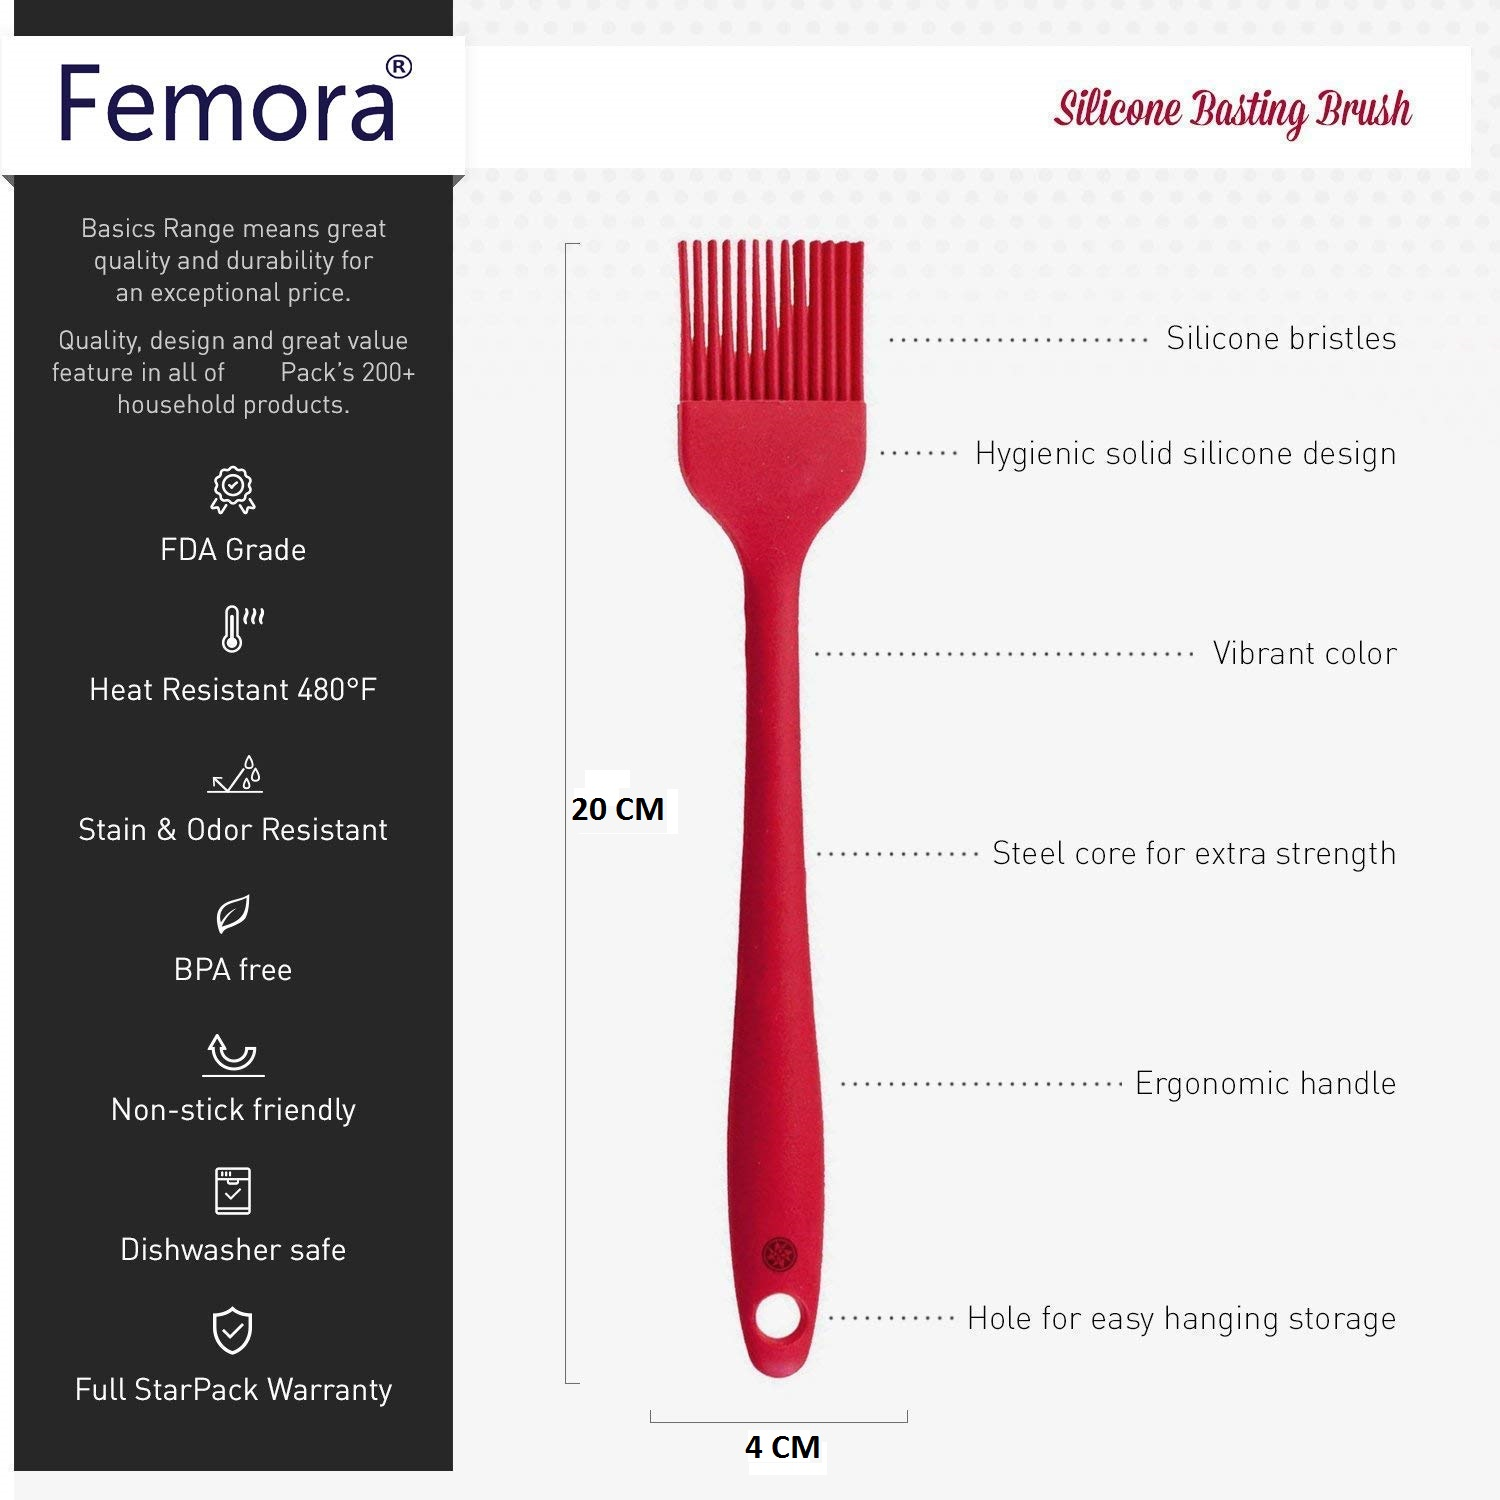 Femora Silicone Premium Brush with Grip Handle, Red, 1 Year Warranty